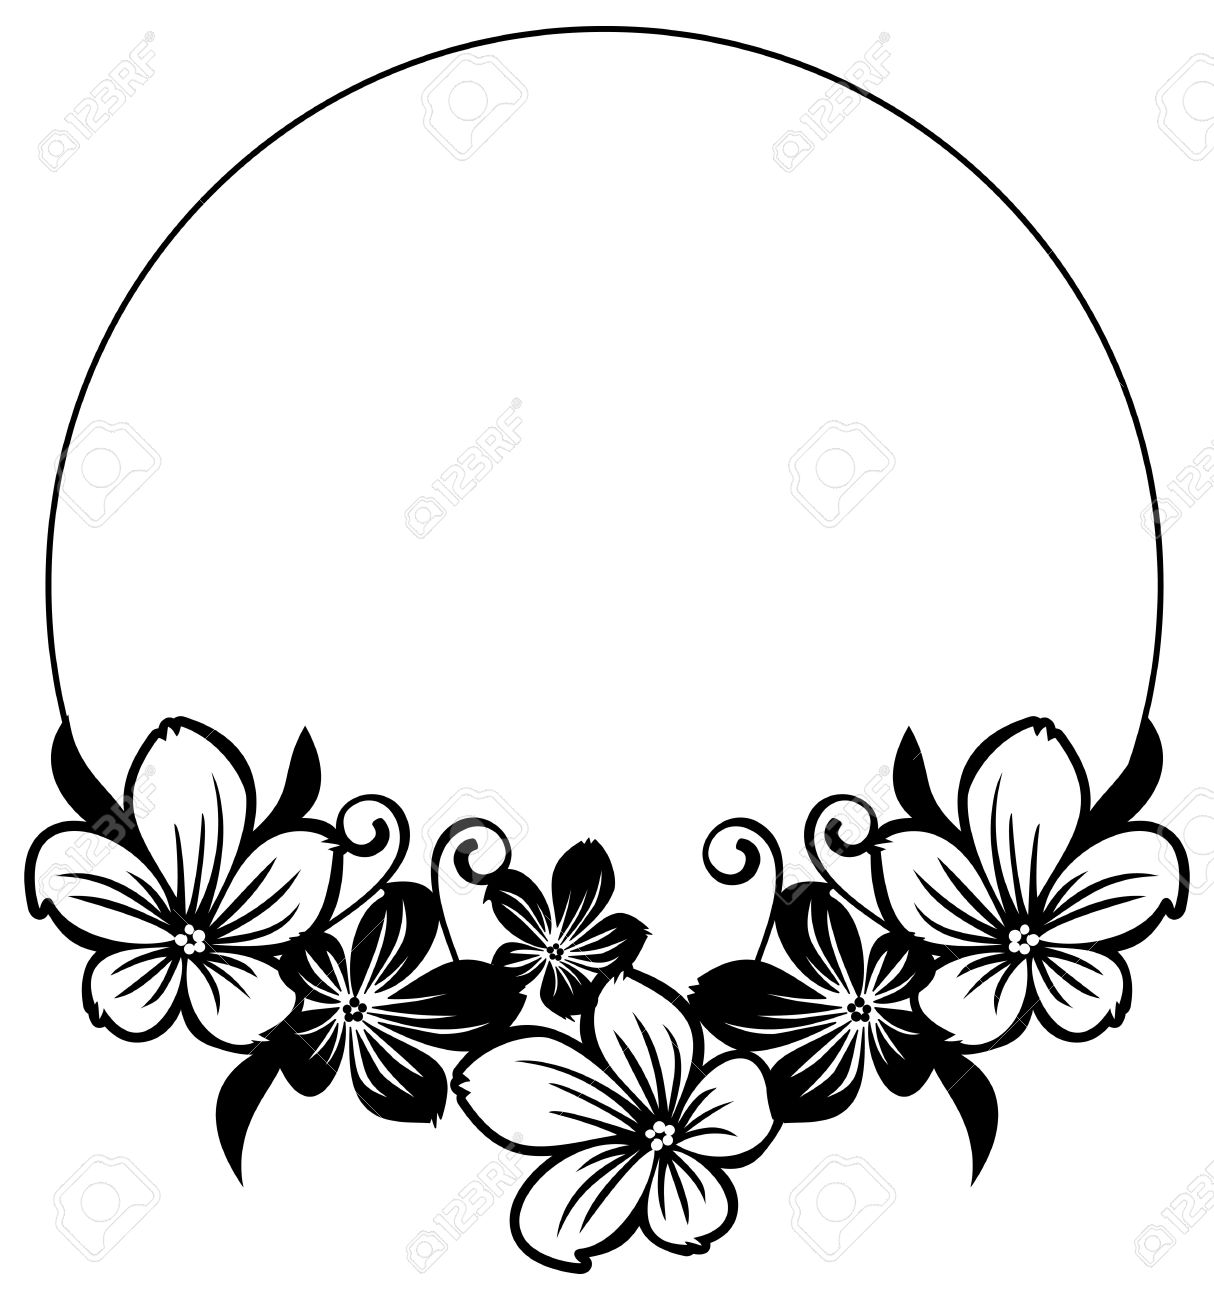 Flower silhouette clipart 3 » Clipart Station.